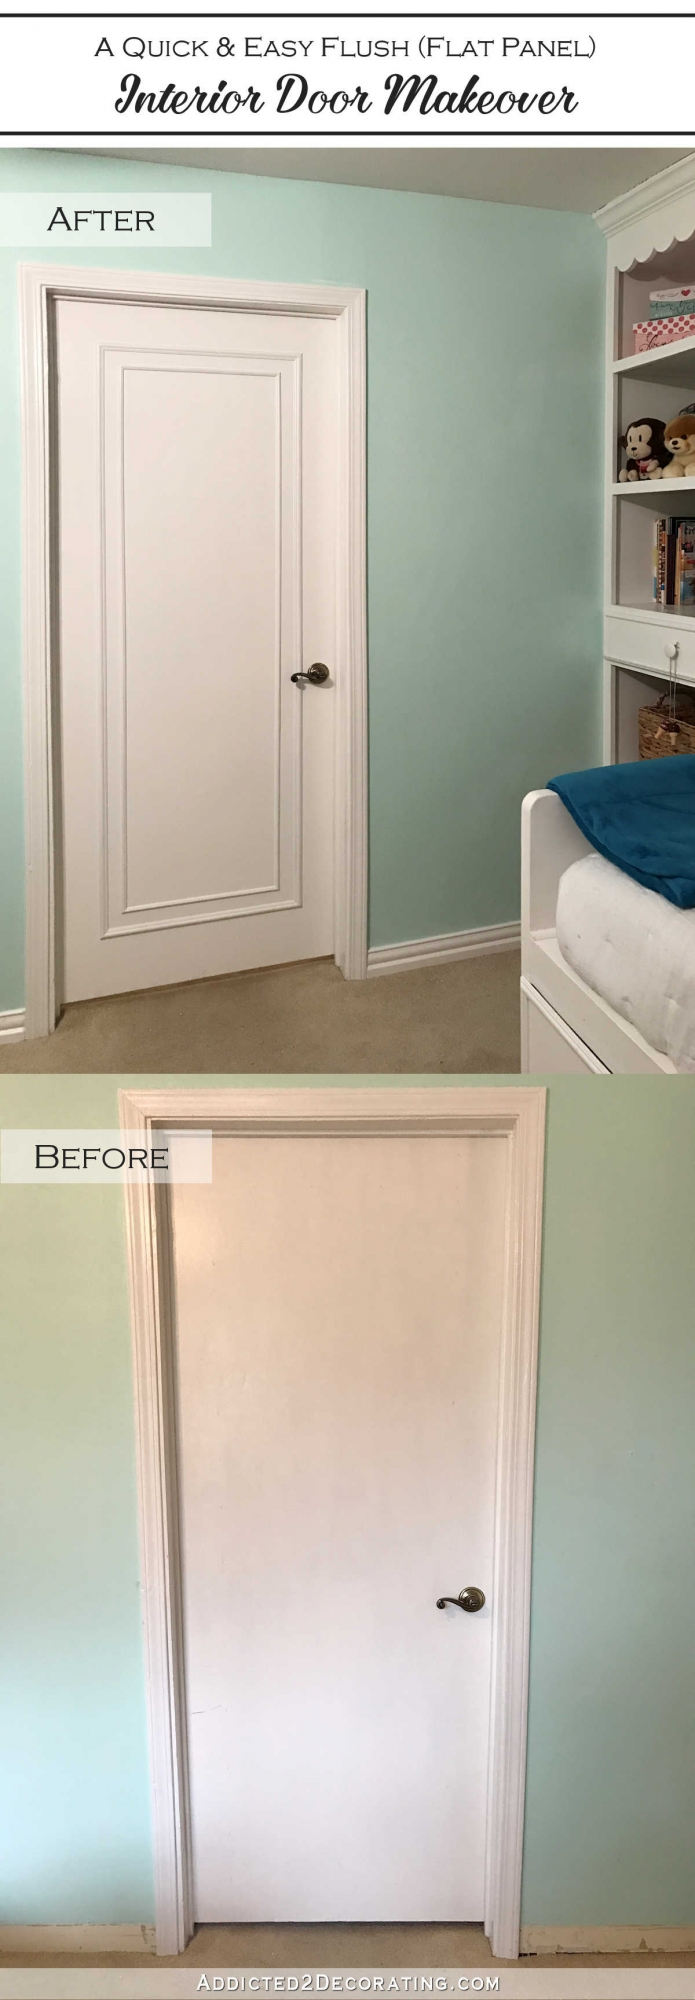 Flat Panel Door Makeover Ideas - Inexpensive Door Makeover by Addicted 2 Decorating